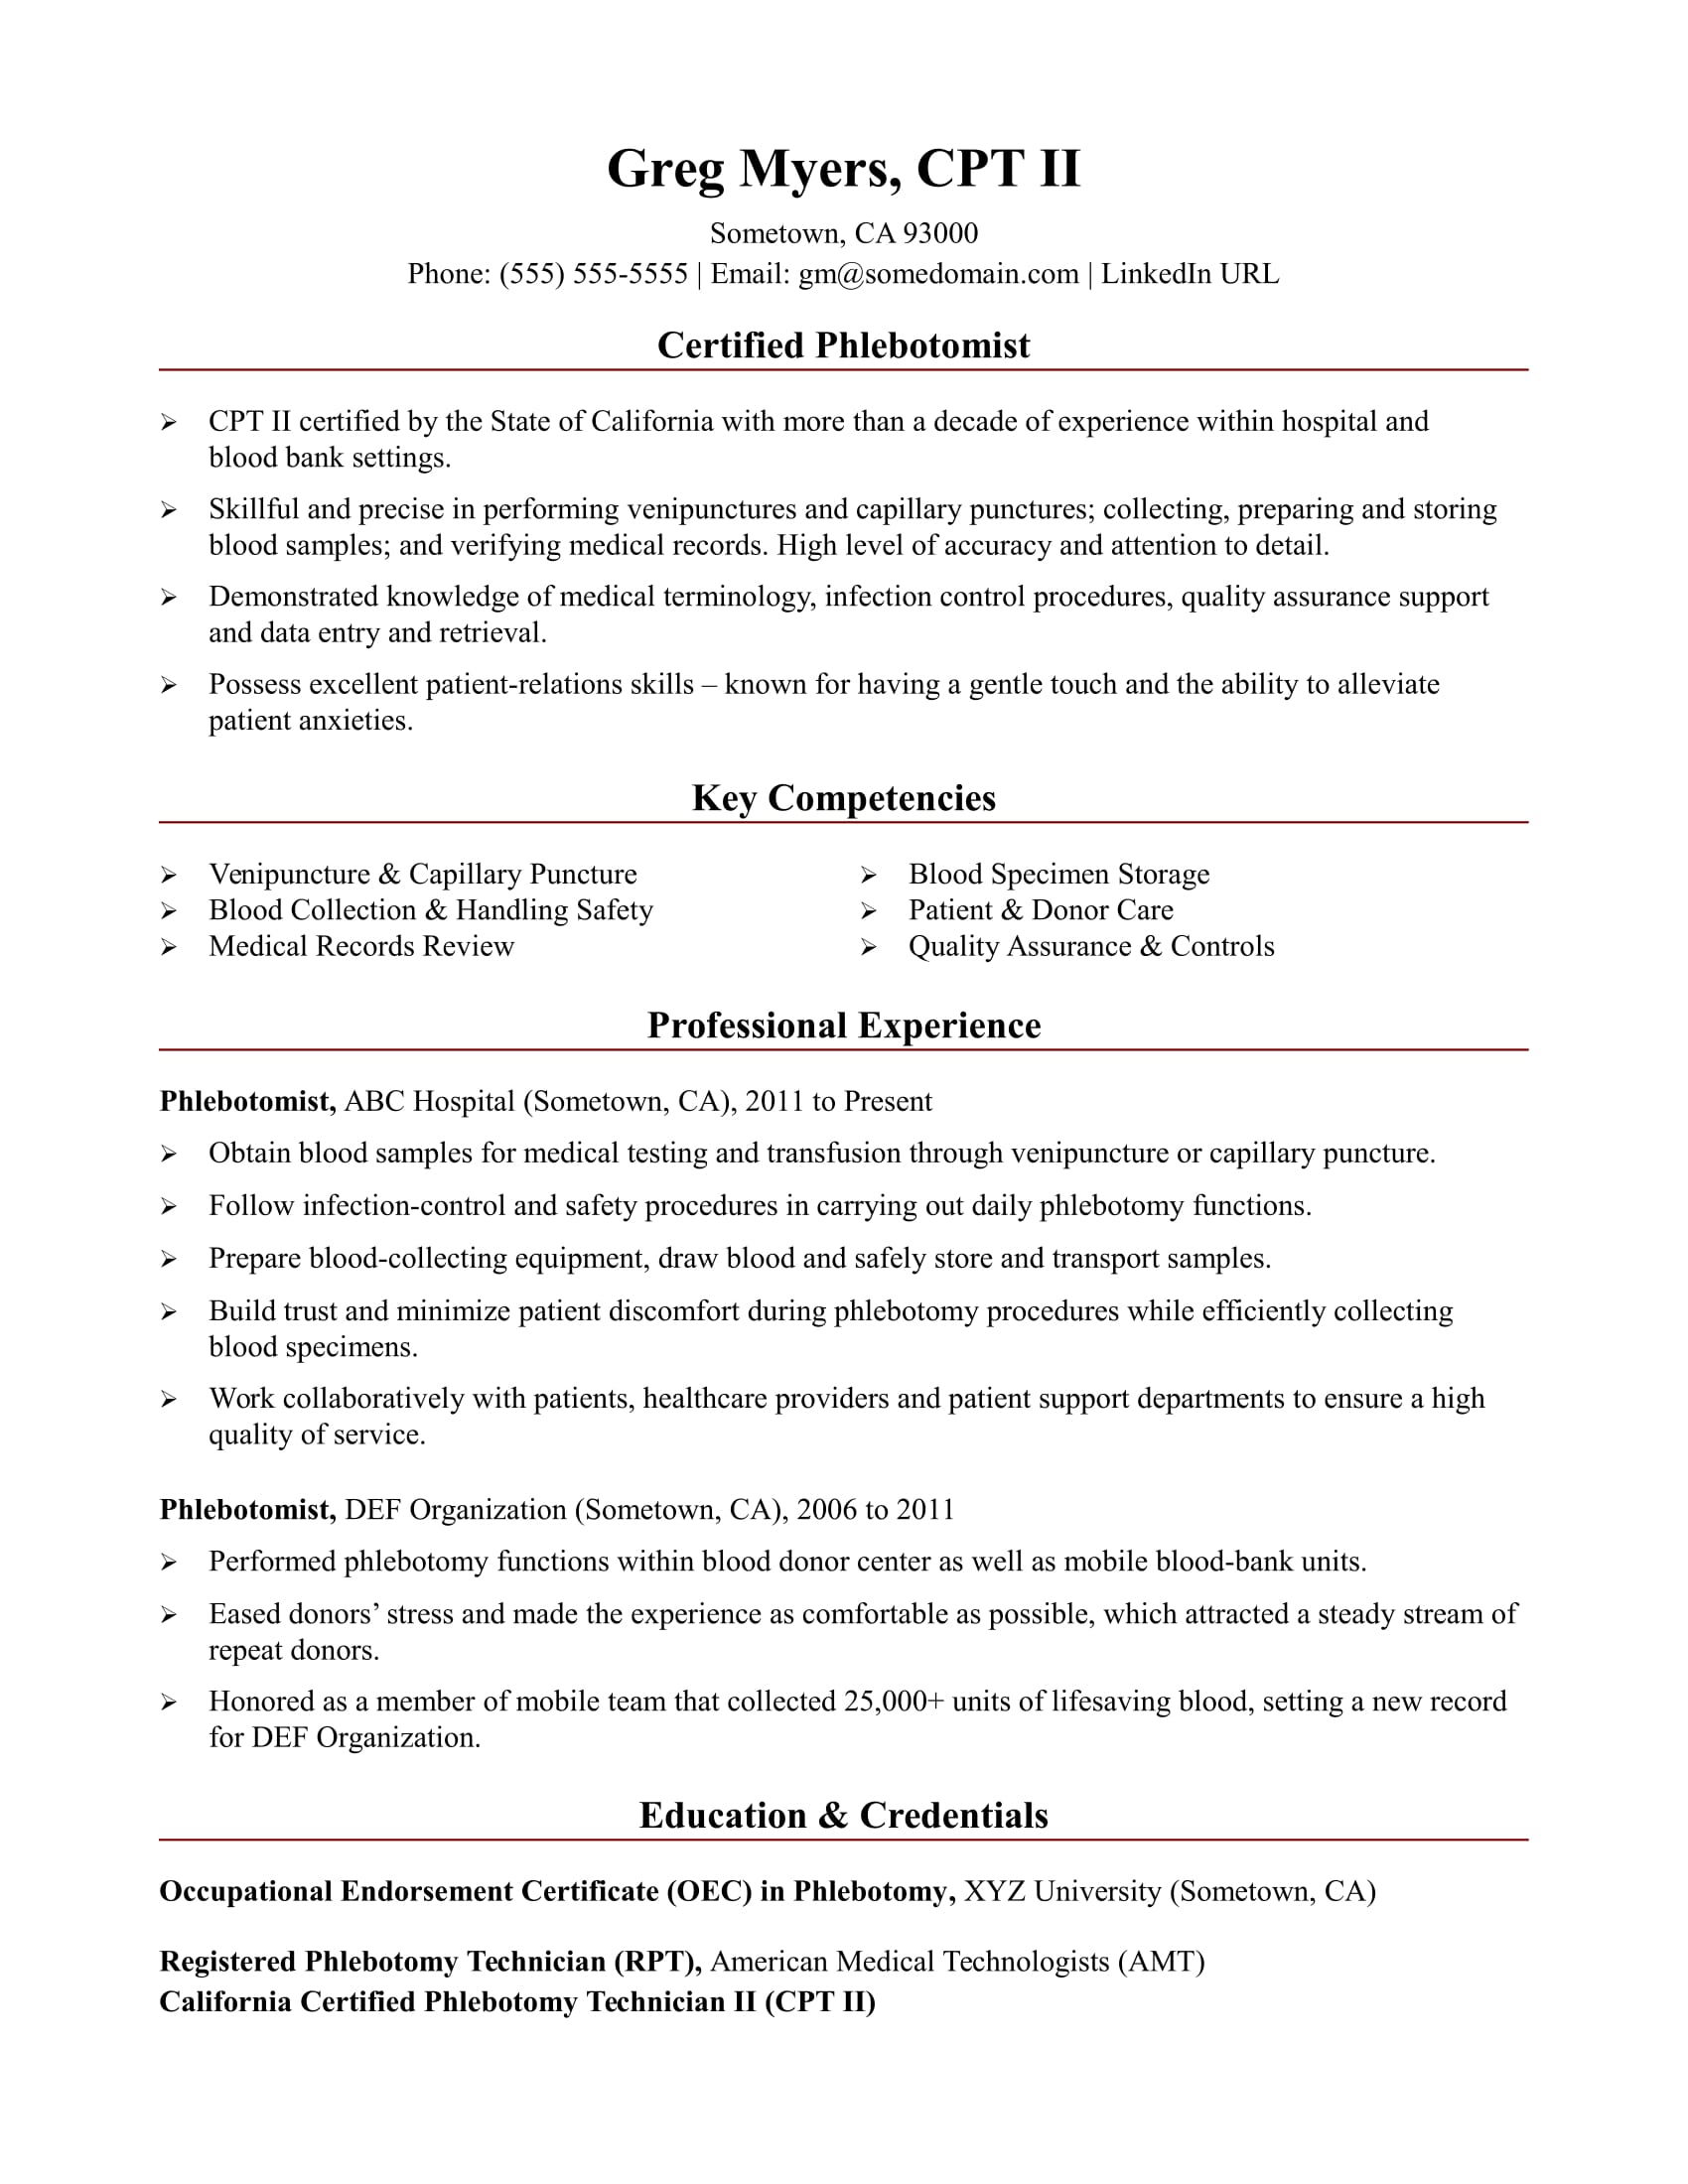 resume Phlebotomy Resume phlebotomist resume sample monster com for a phlebotomist